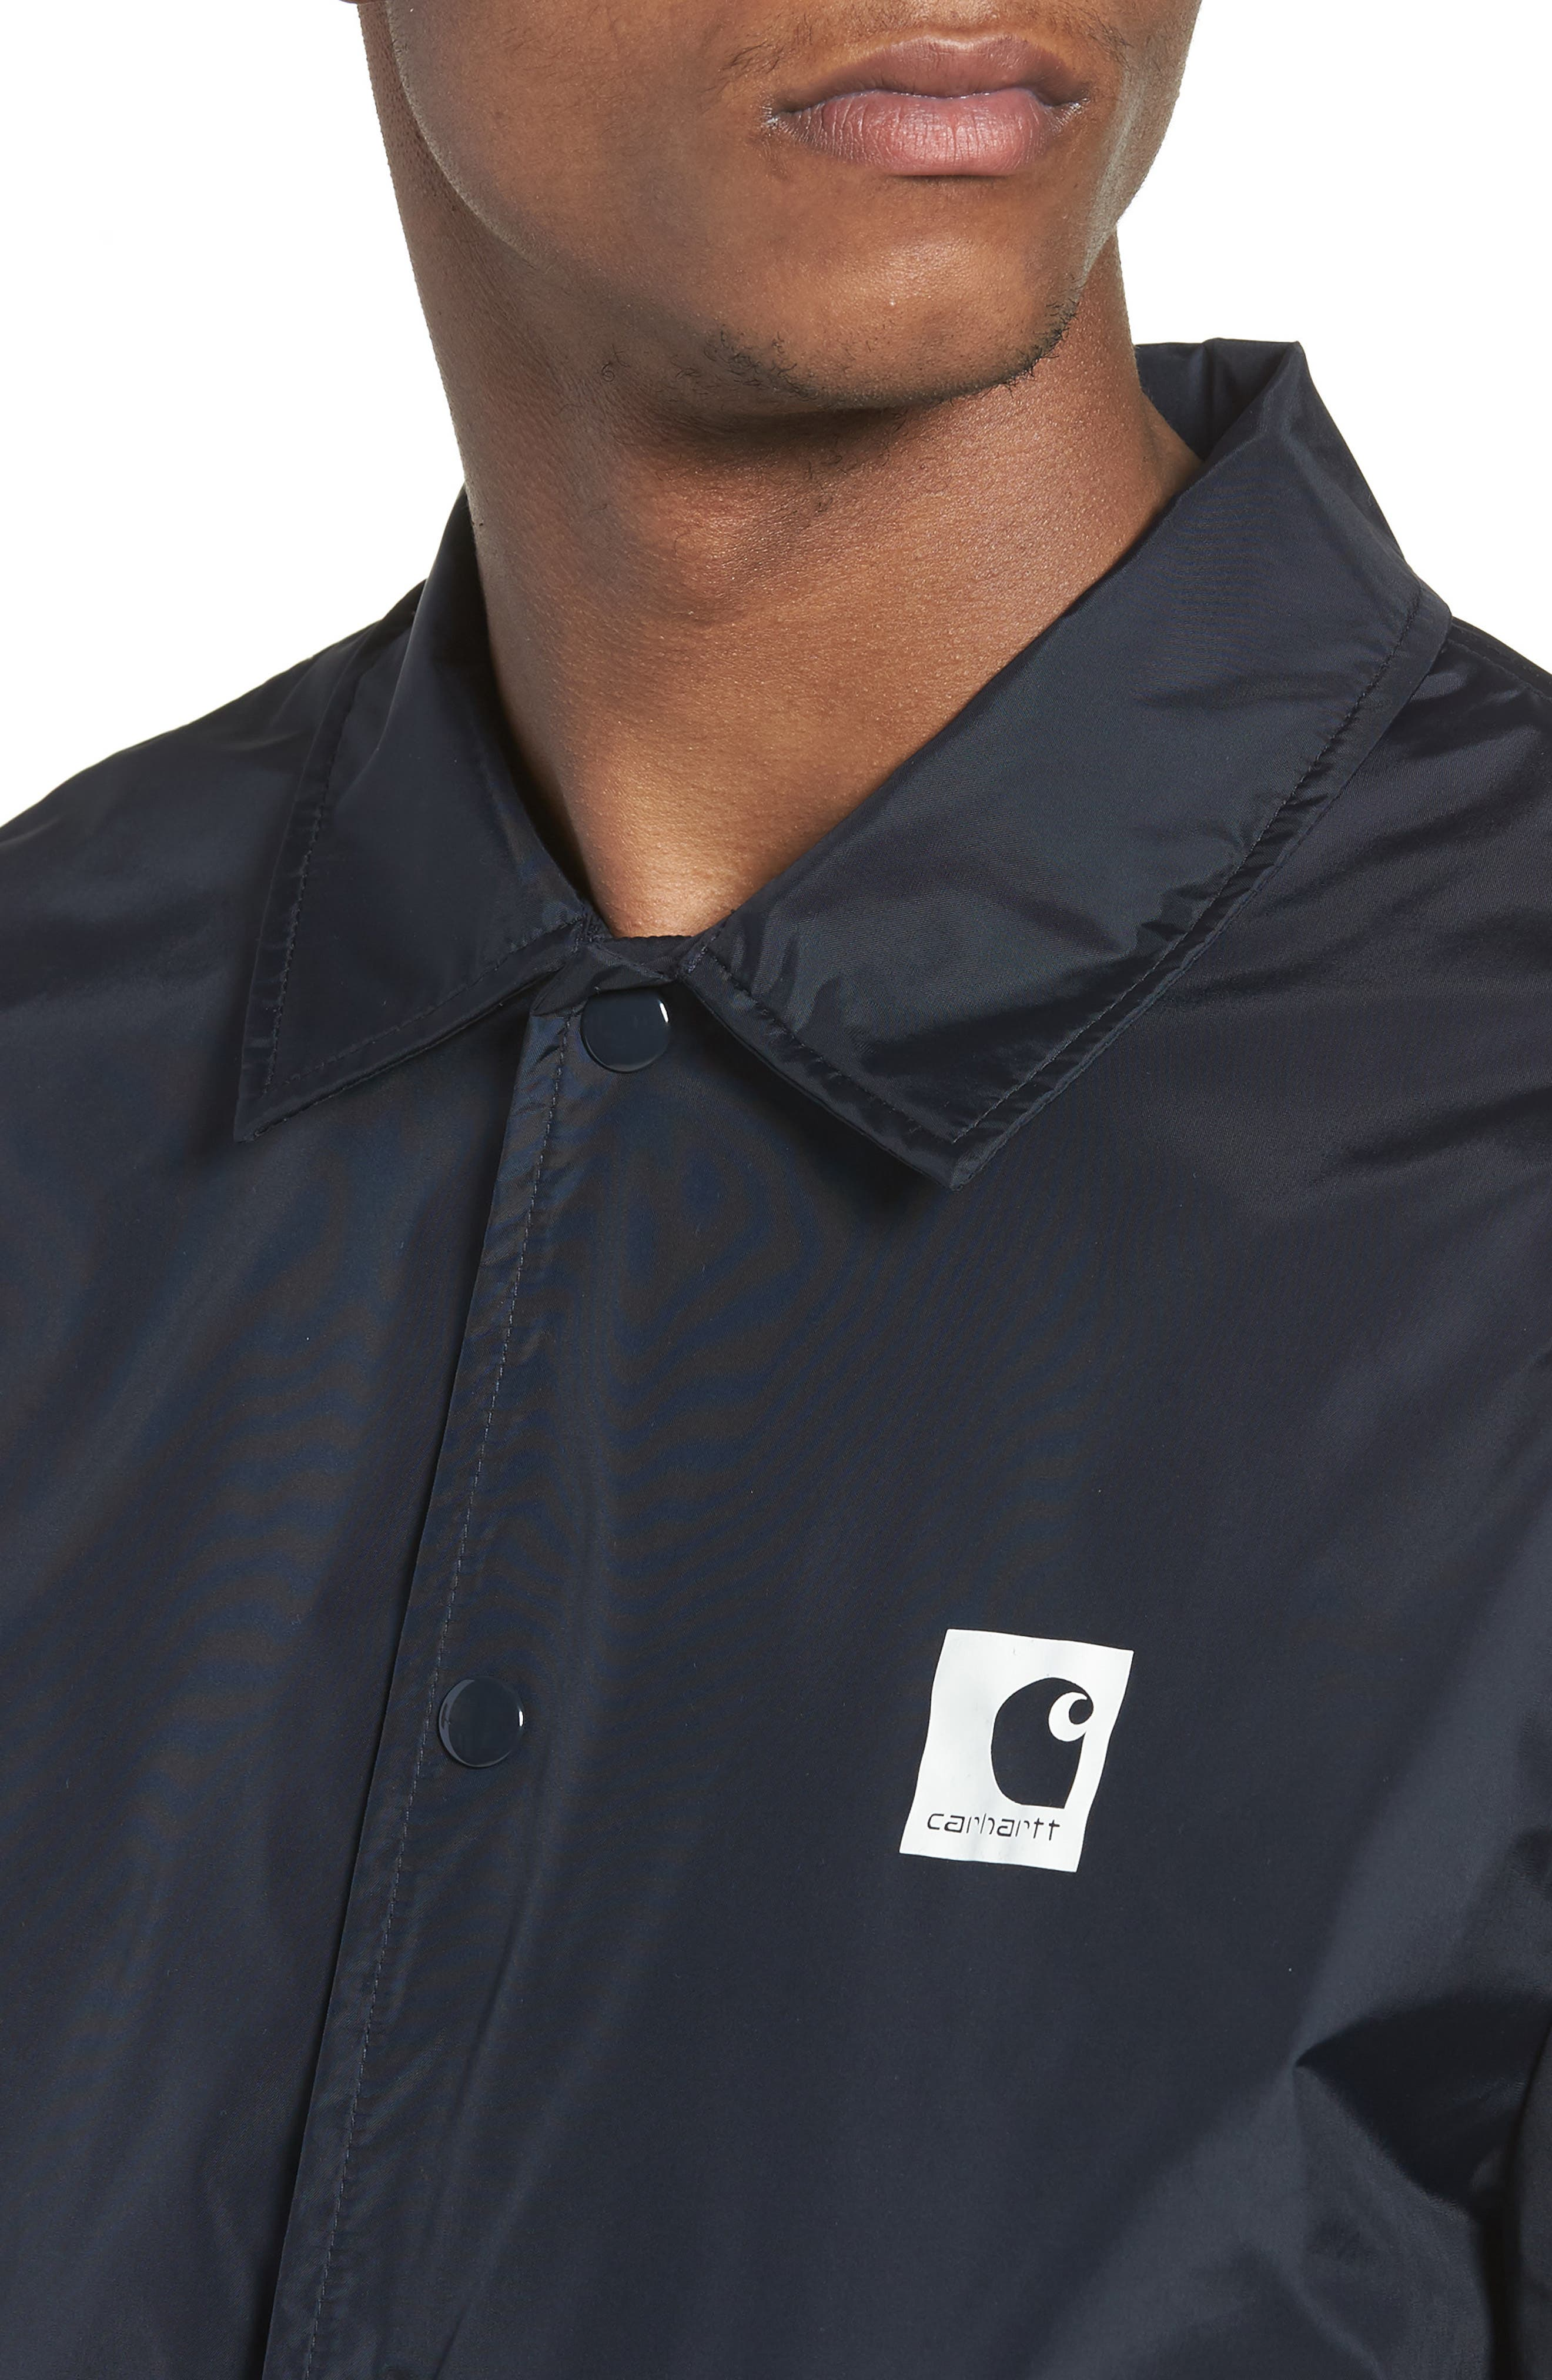 Sport Coach's Jacket,                             Alternate thumbnail 4, color,